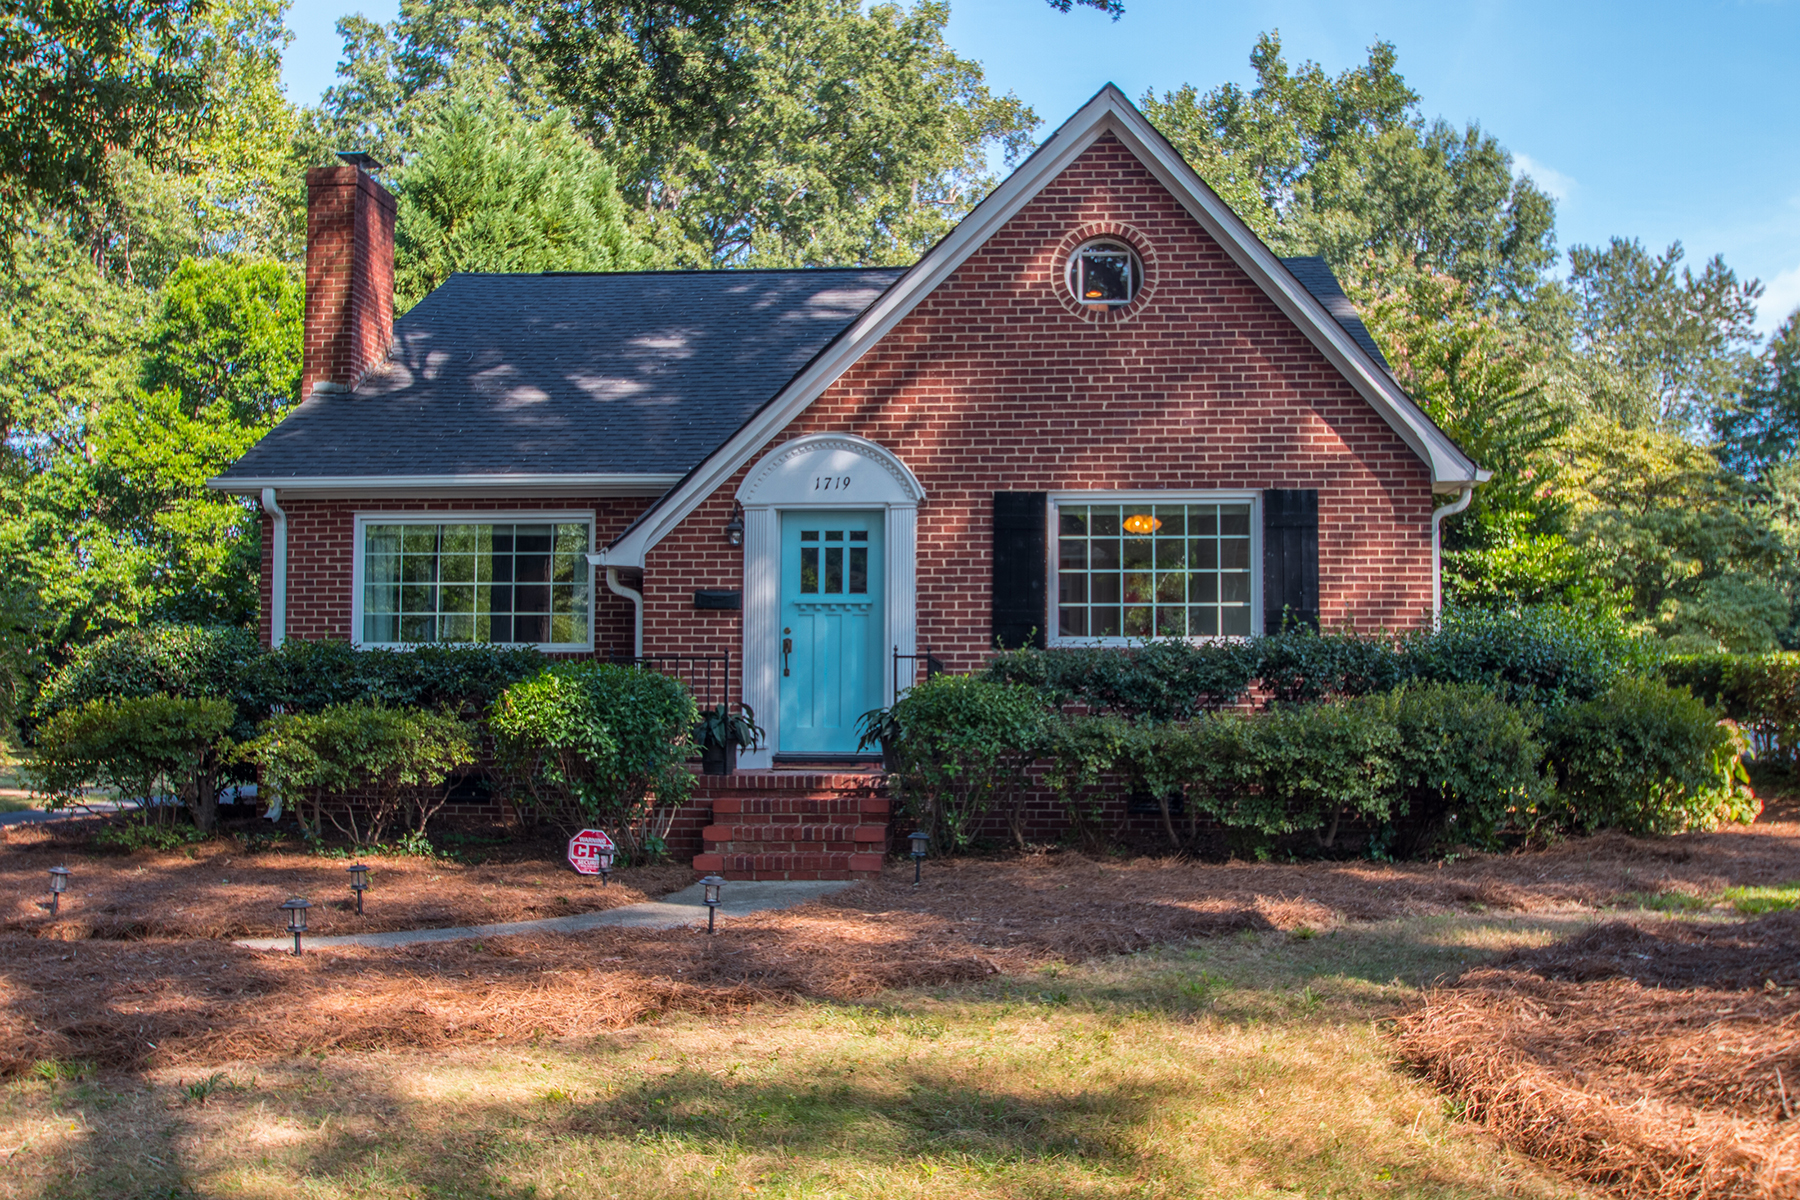 Single Family Home for Sale at 1719 Dilworth Rd E, Charlotte, NC 28203 1719 Dilworth Rd E Charlotte, North Carolina, 28203 United States